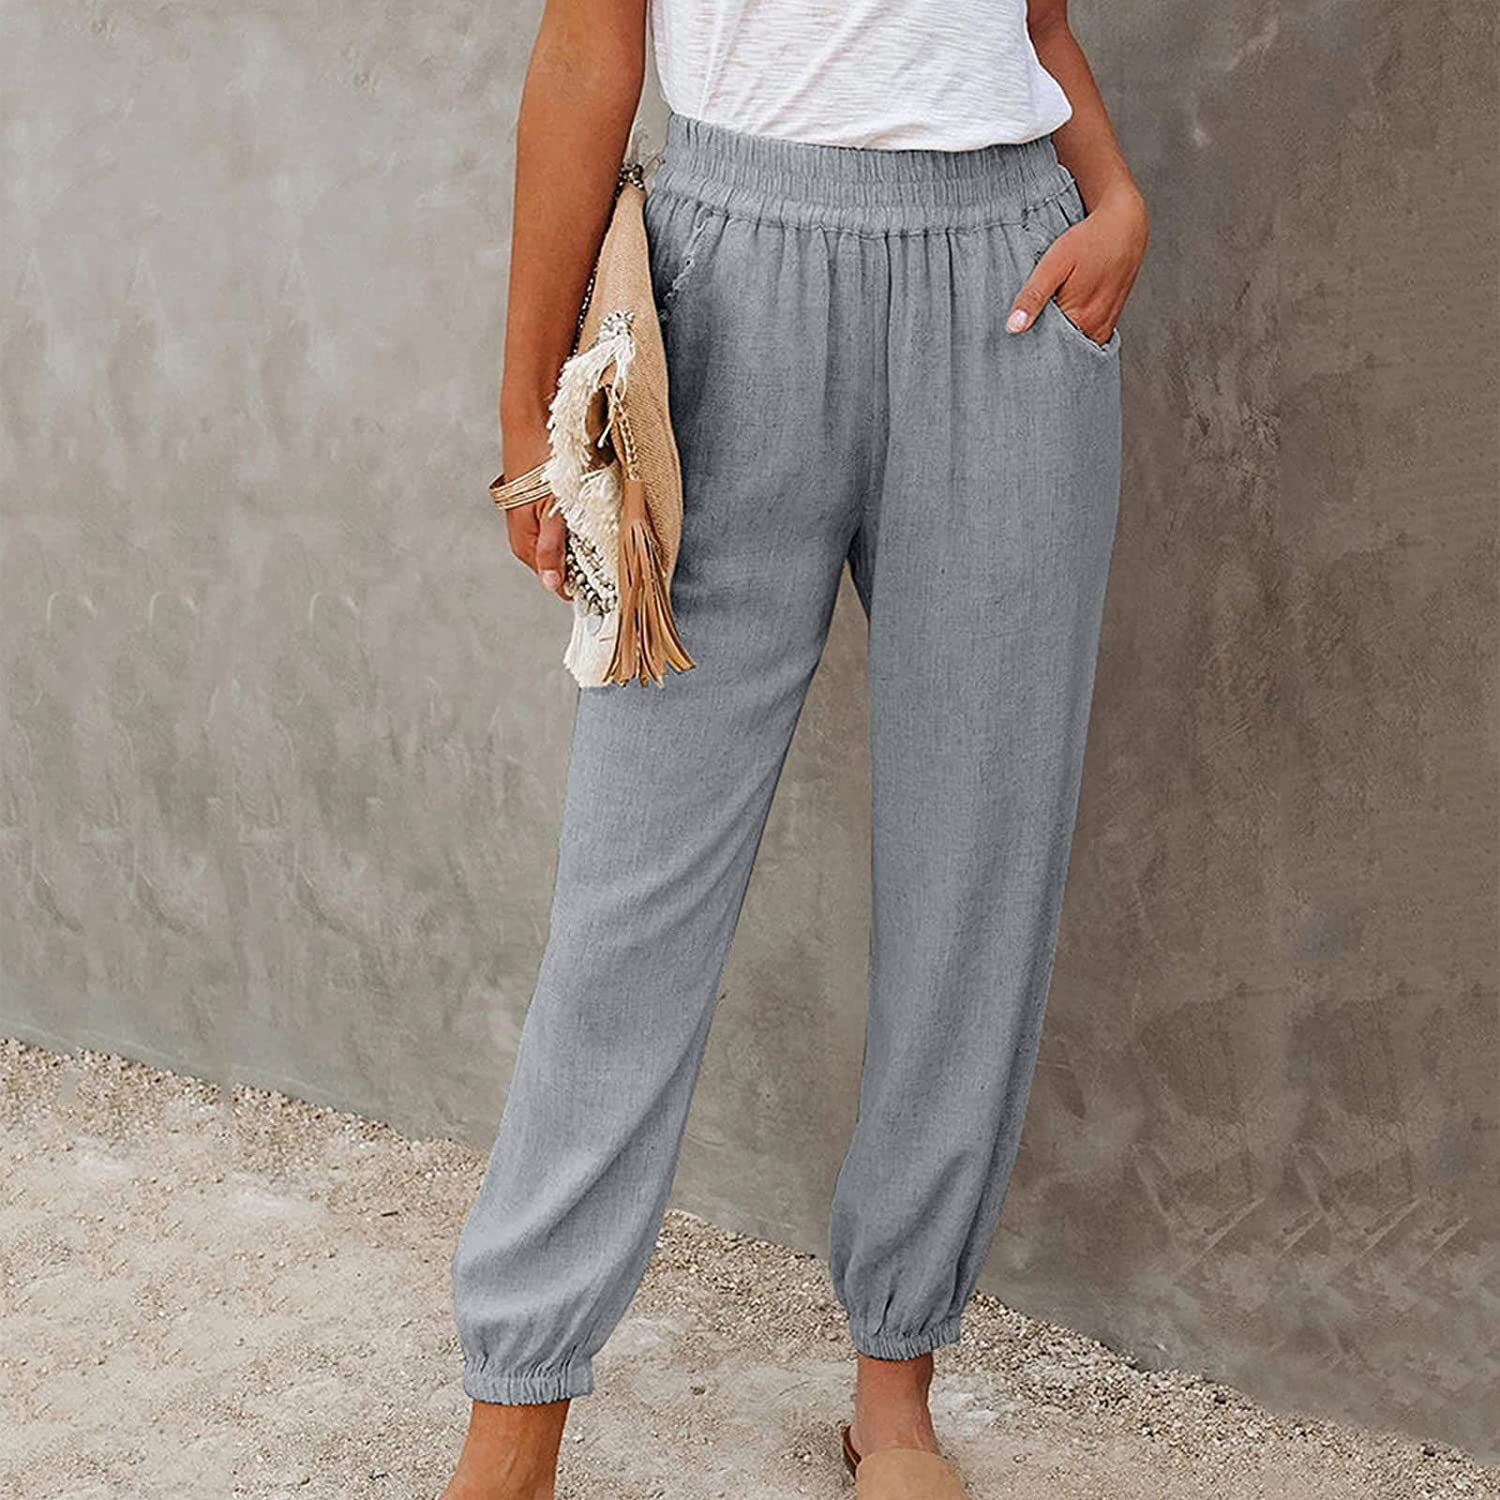 Women's Lounge Pants Casual Pencil Loose High Waist Solid Color with Pockets for Work Daily Wear Shopping